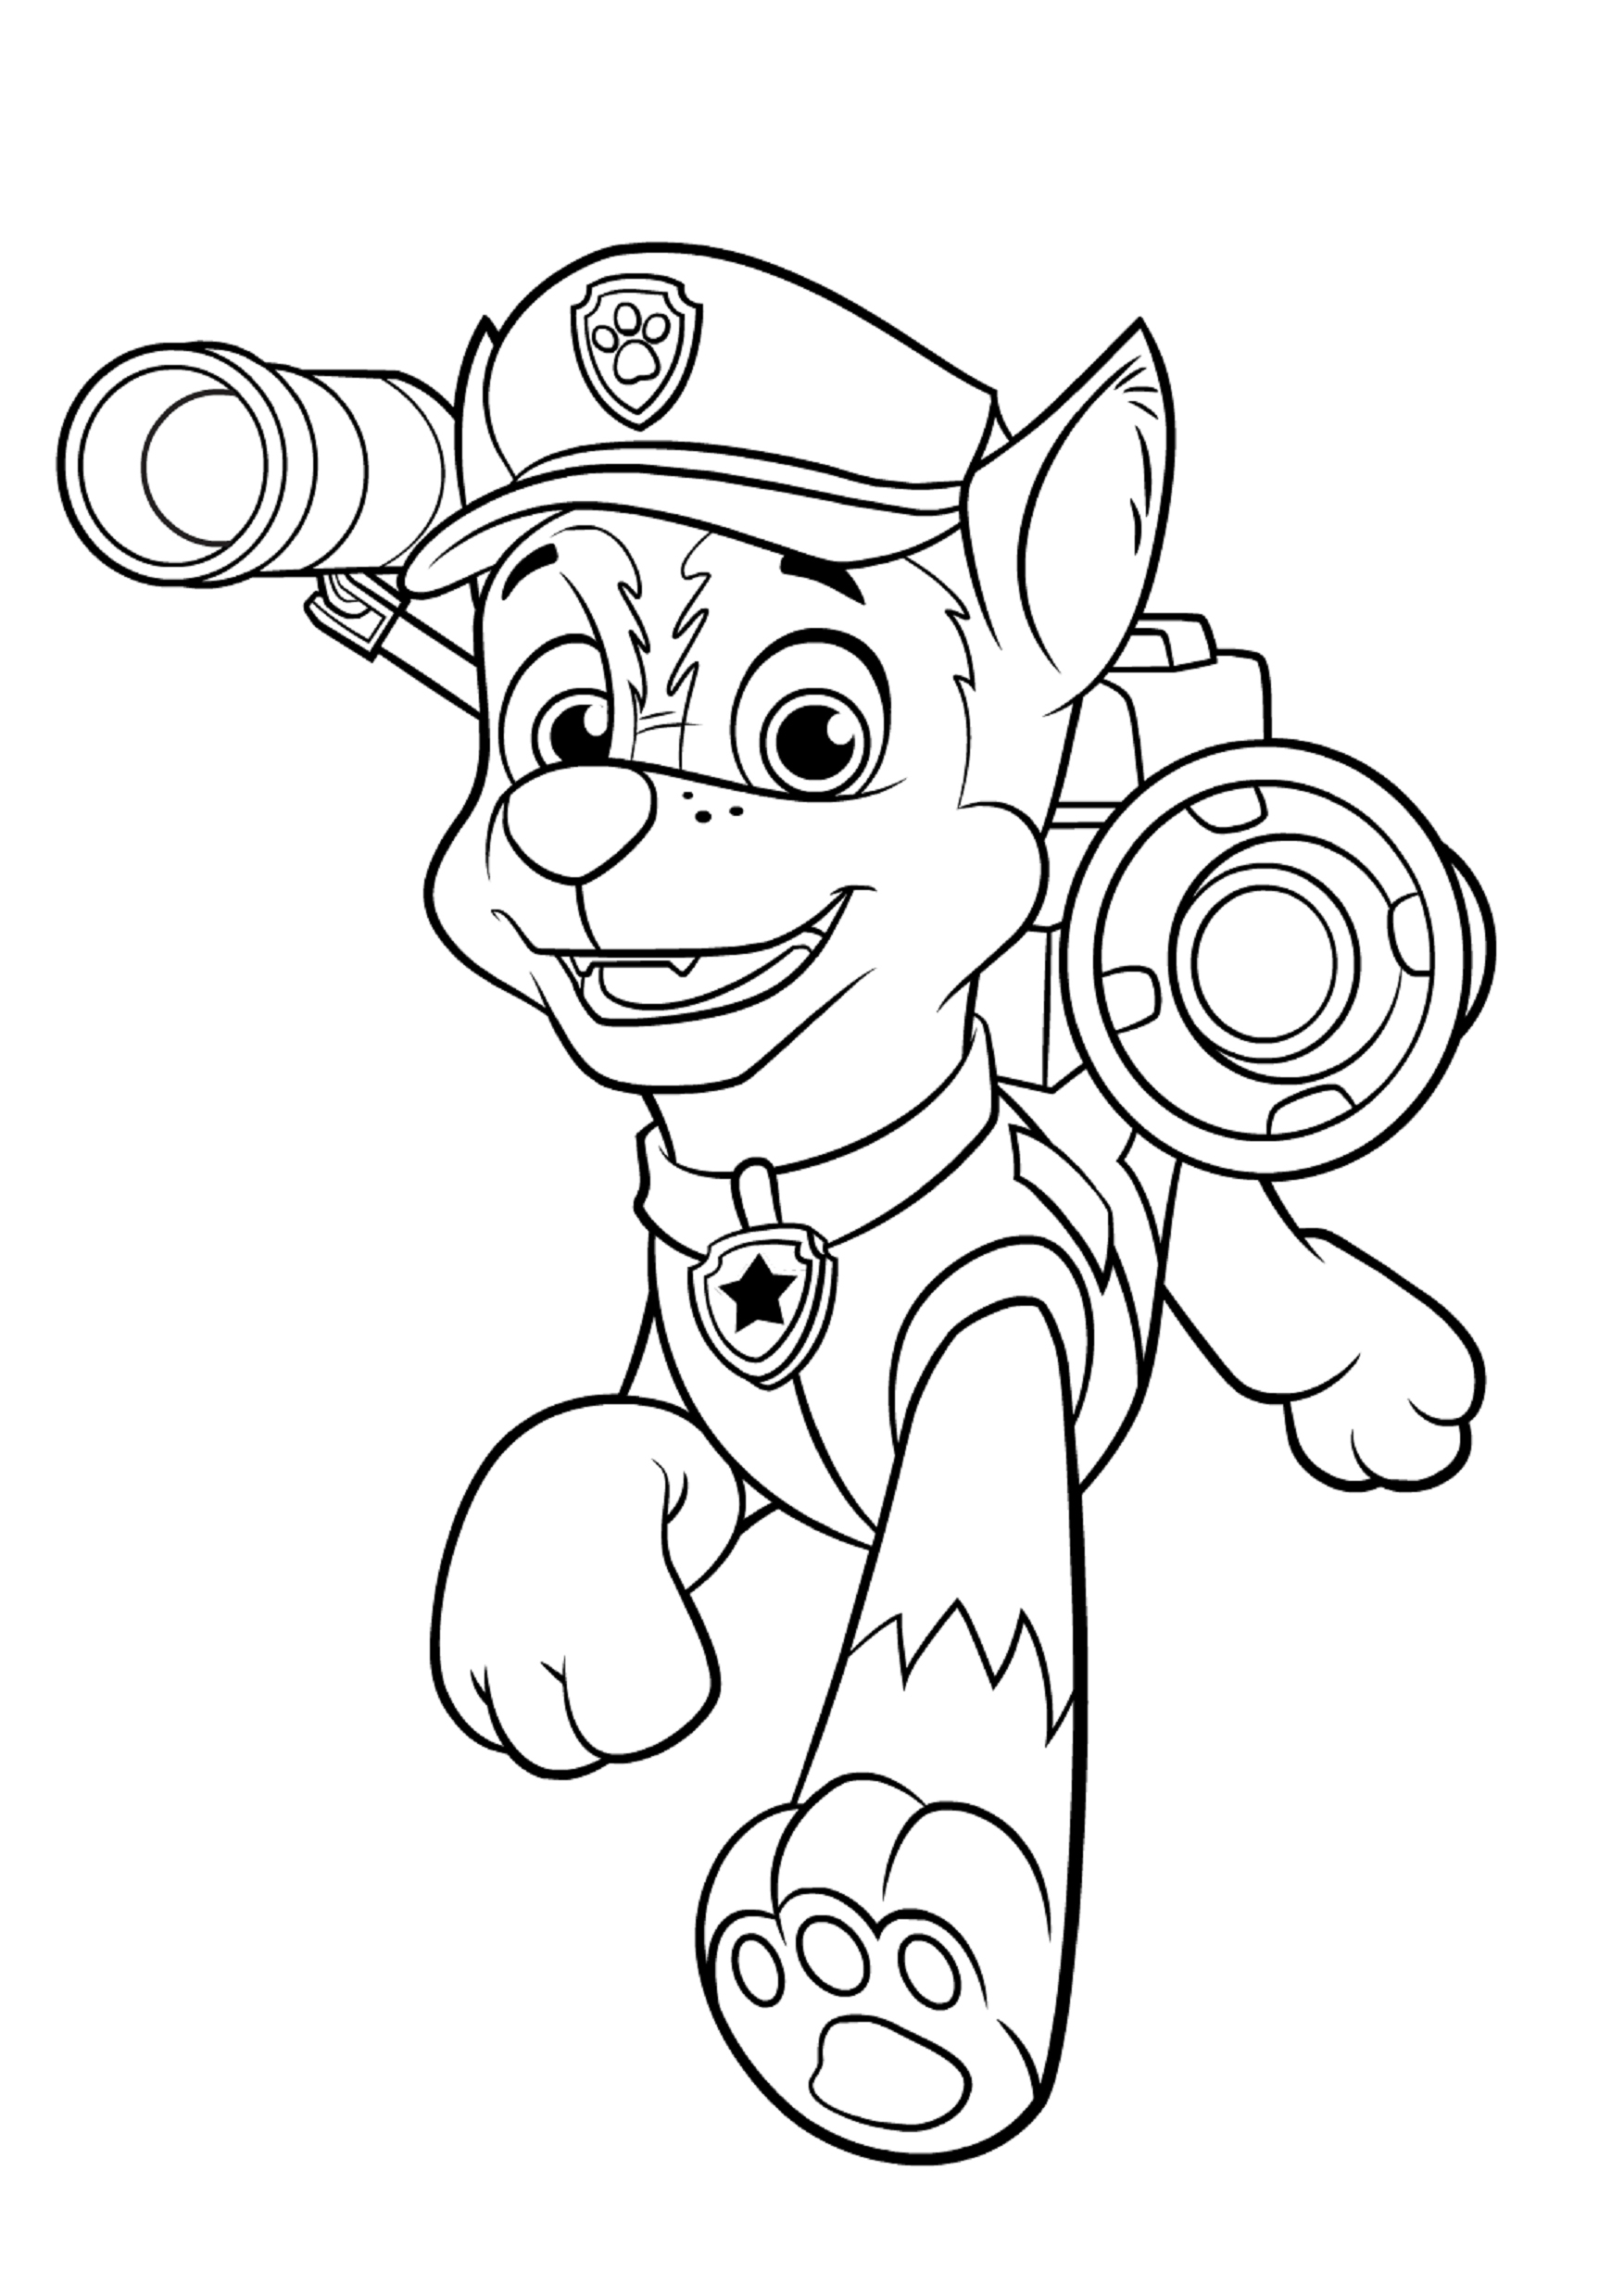 chase coloring page chase paw patrol coloring pages to download and print for free